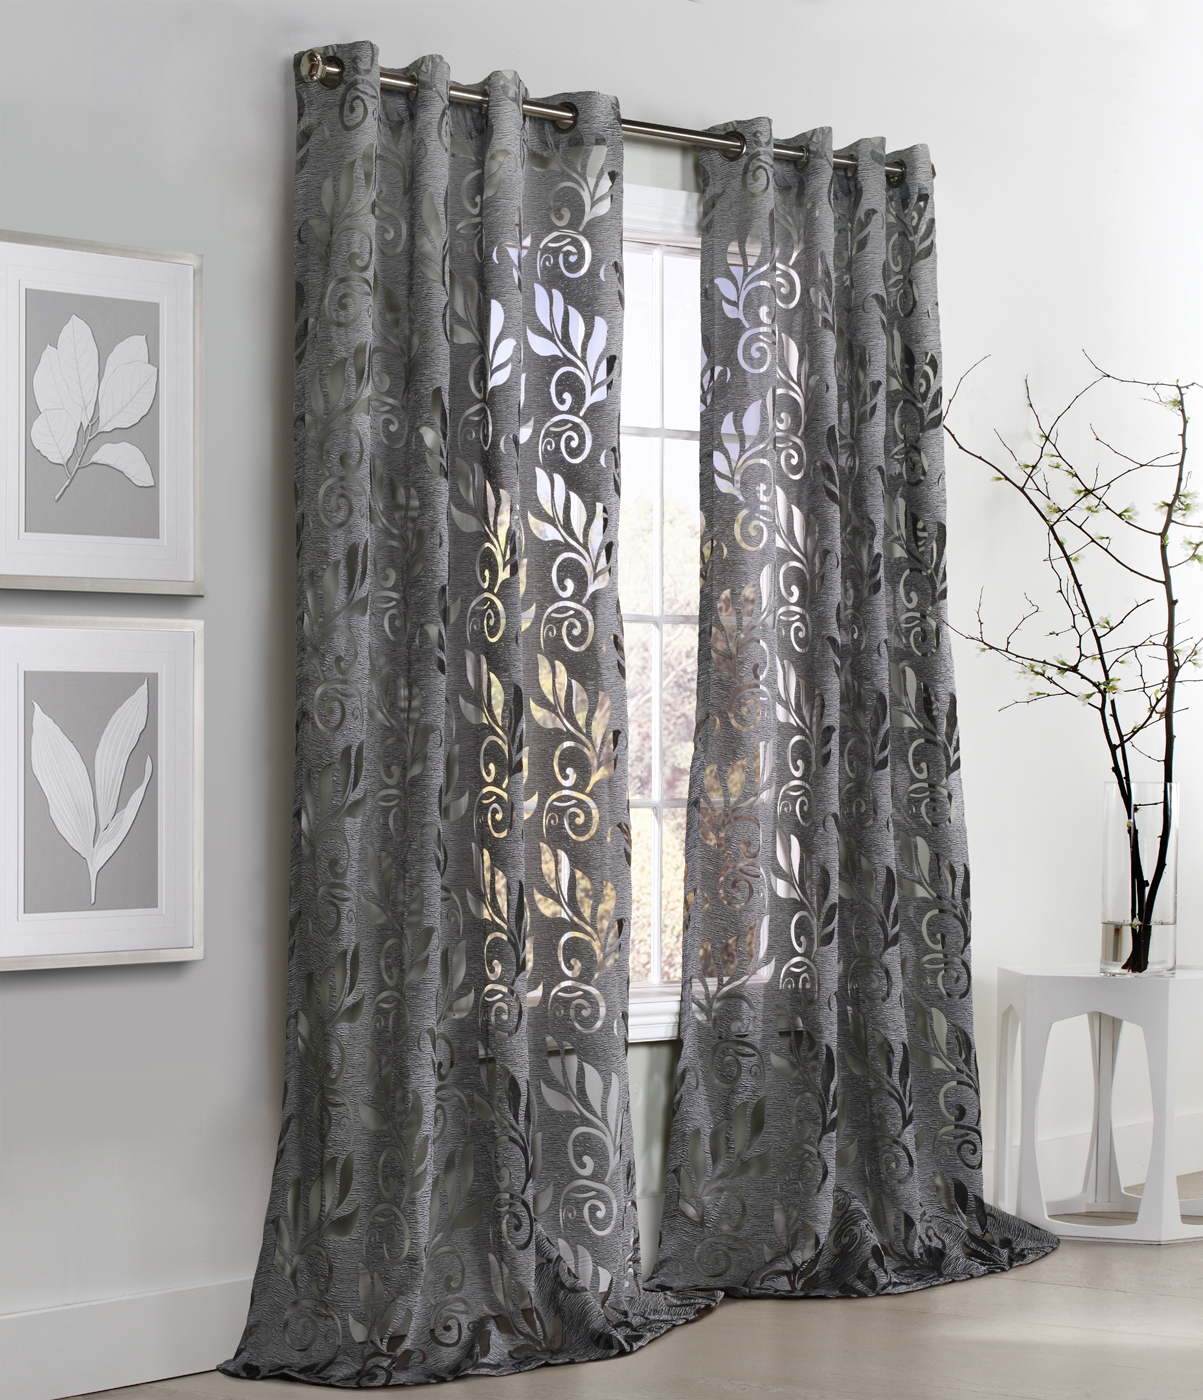 104 Inch Curtains Indoor Outdoor Grommet Top Curtains And Panels Thecurtainshop